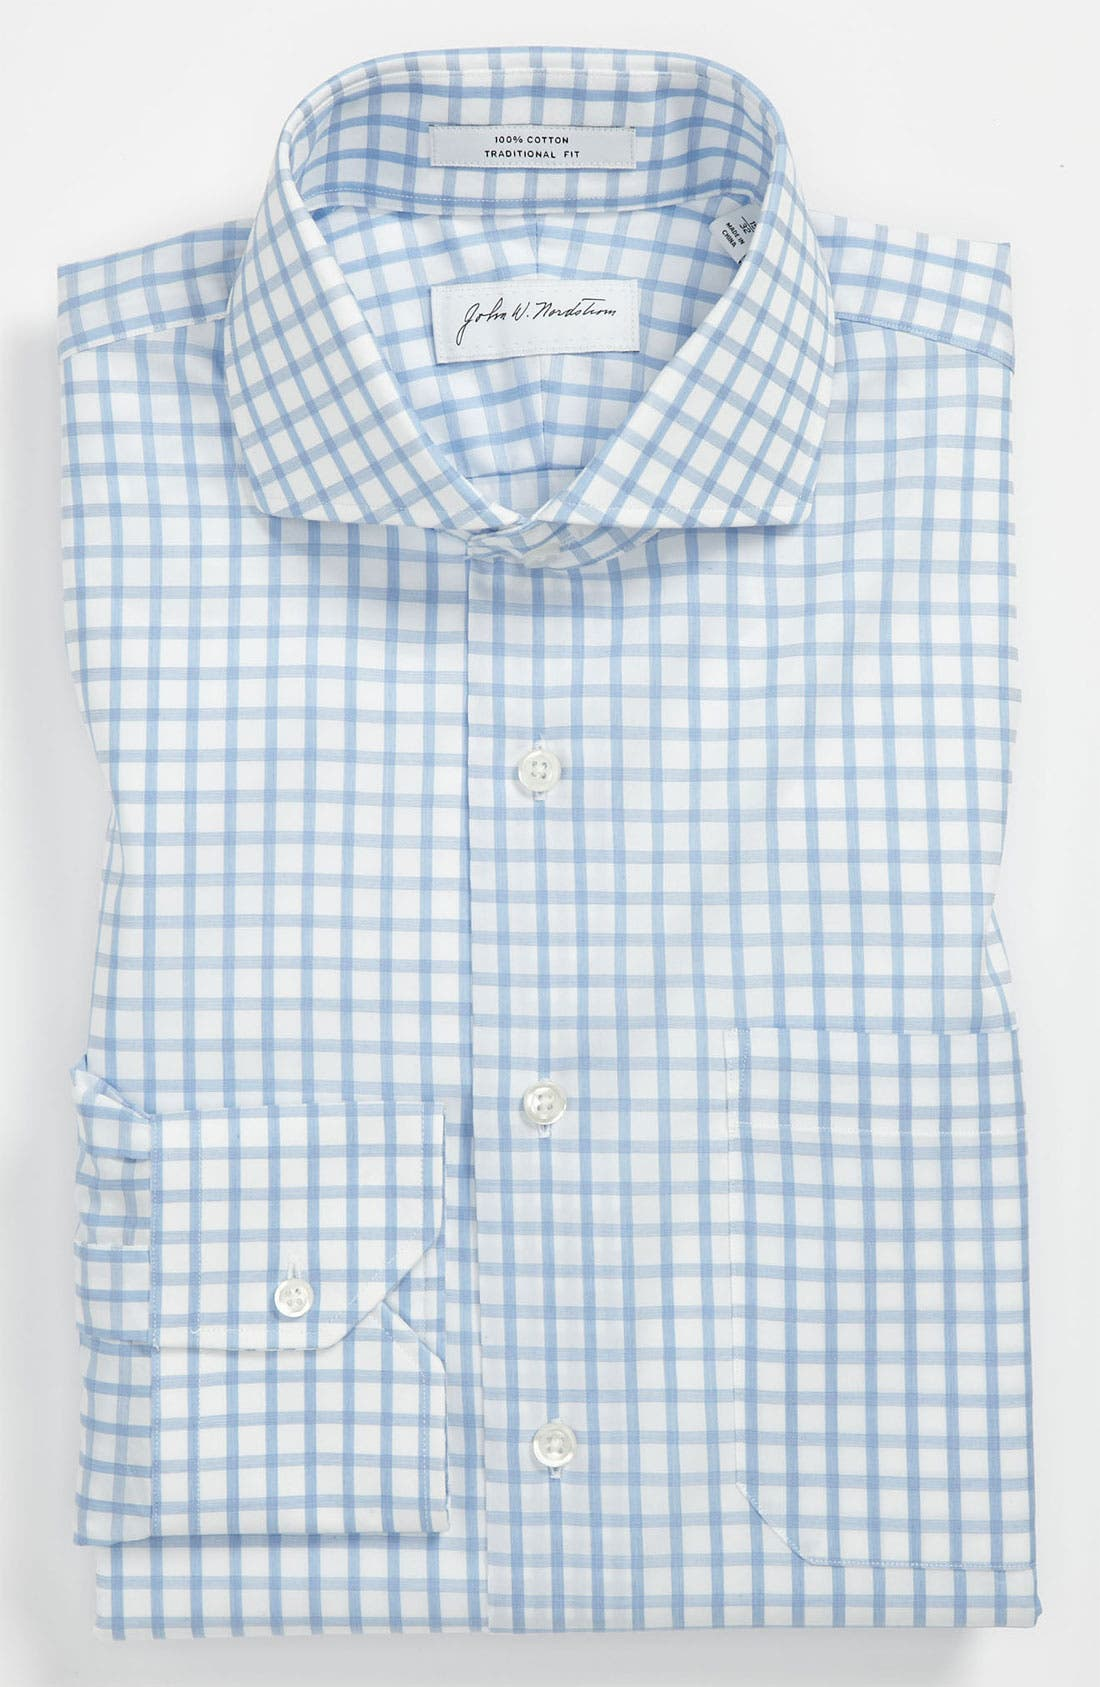 Alternate Image 1 Selected - John W. Nordstrom Traditional Fit Dress Shirt